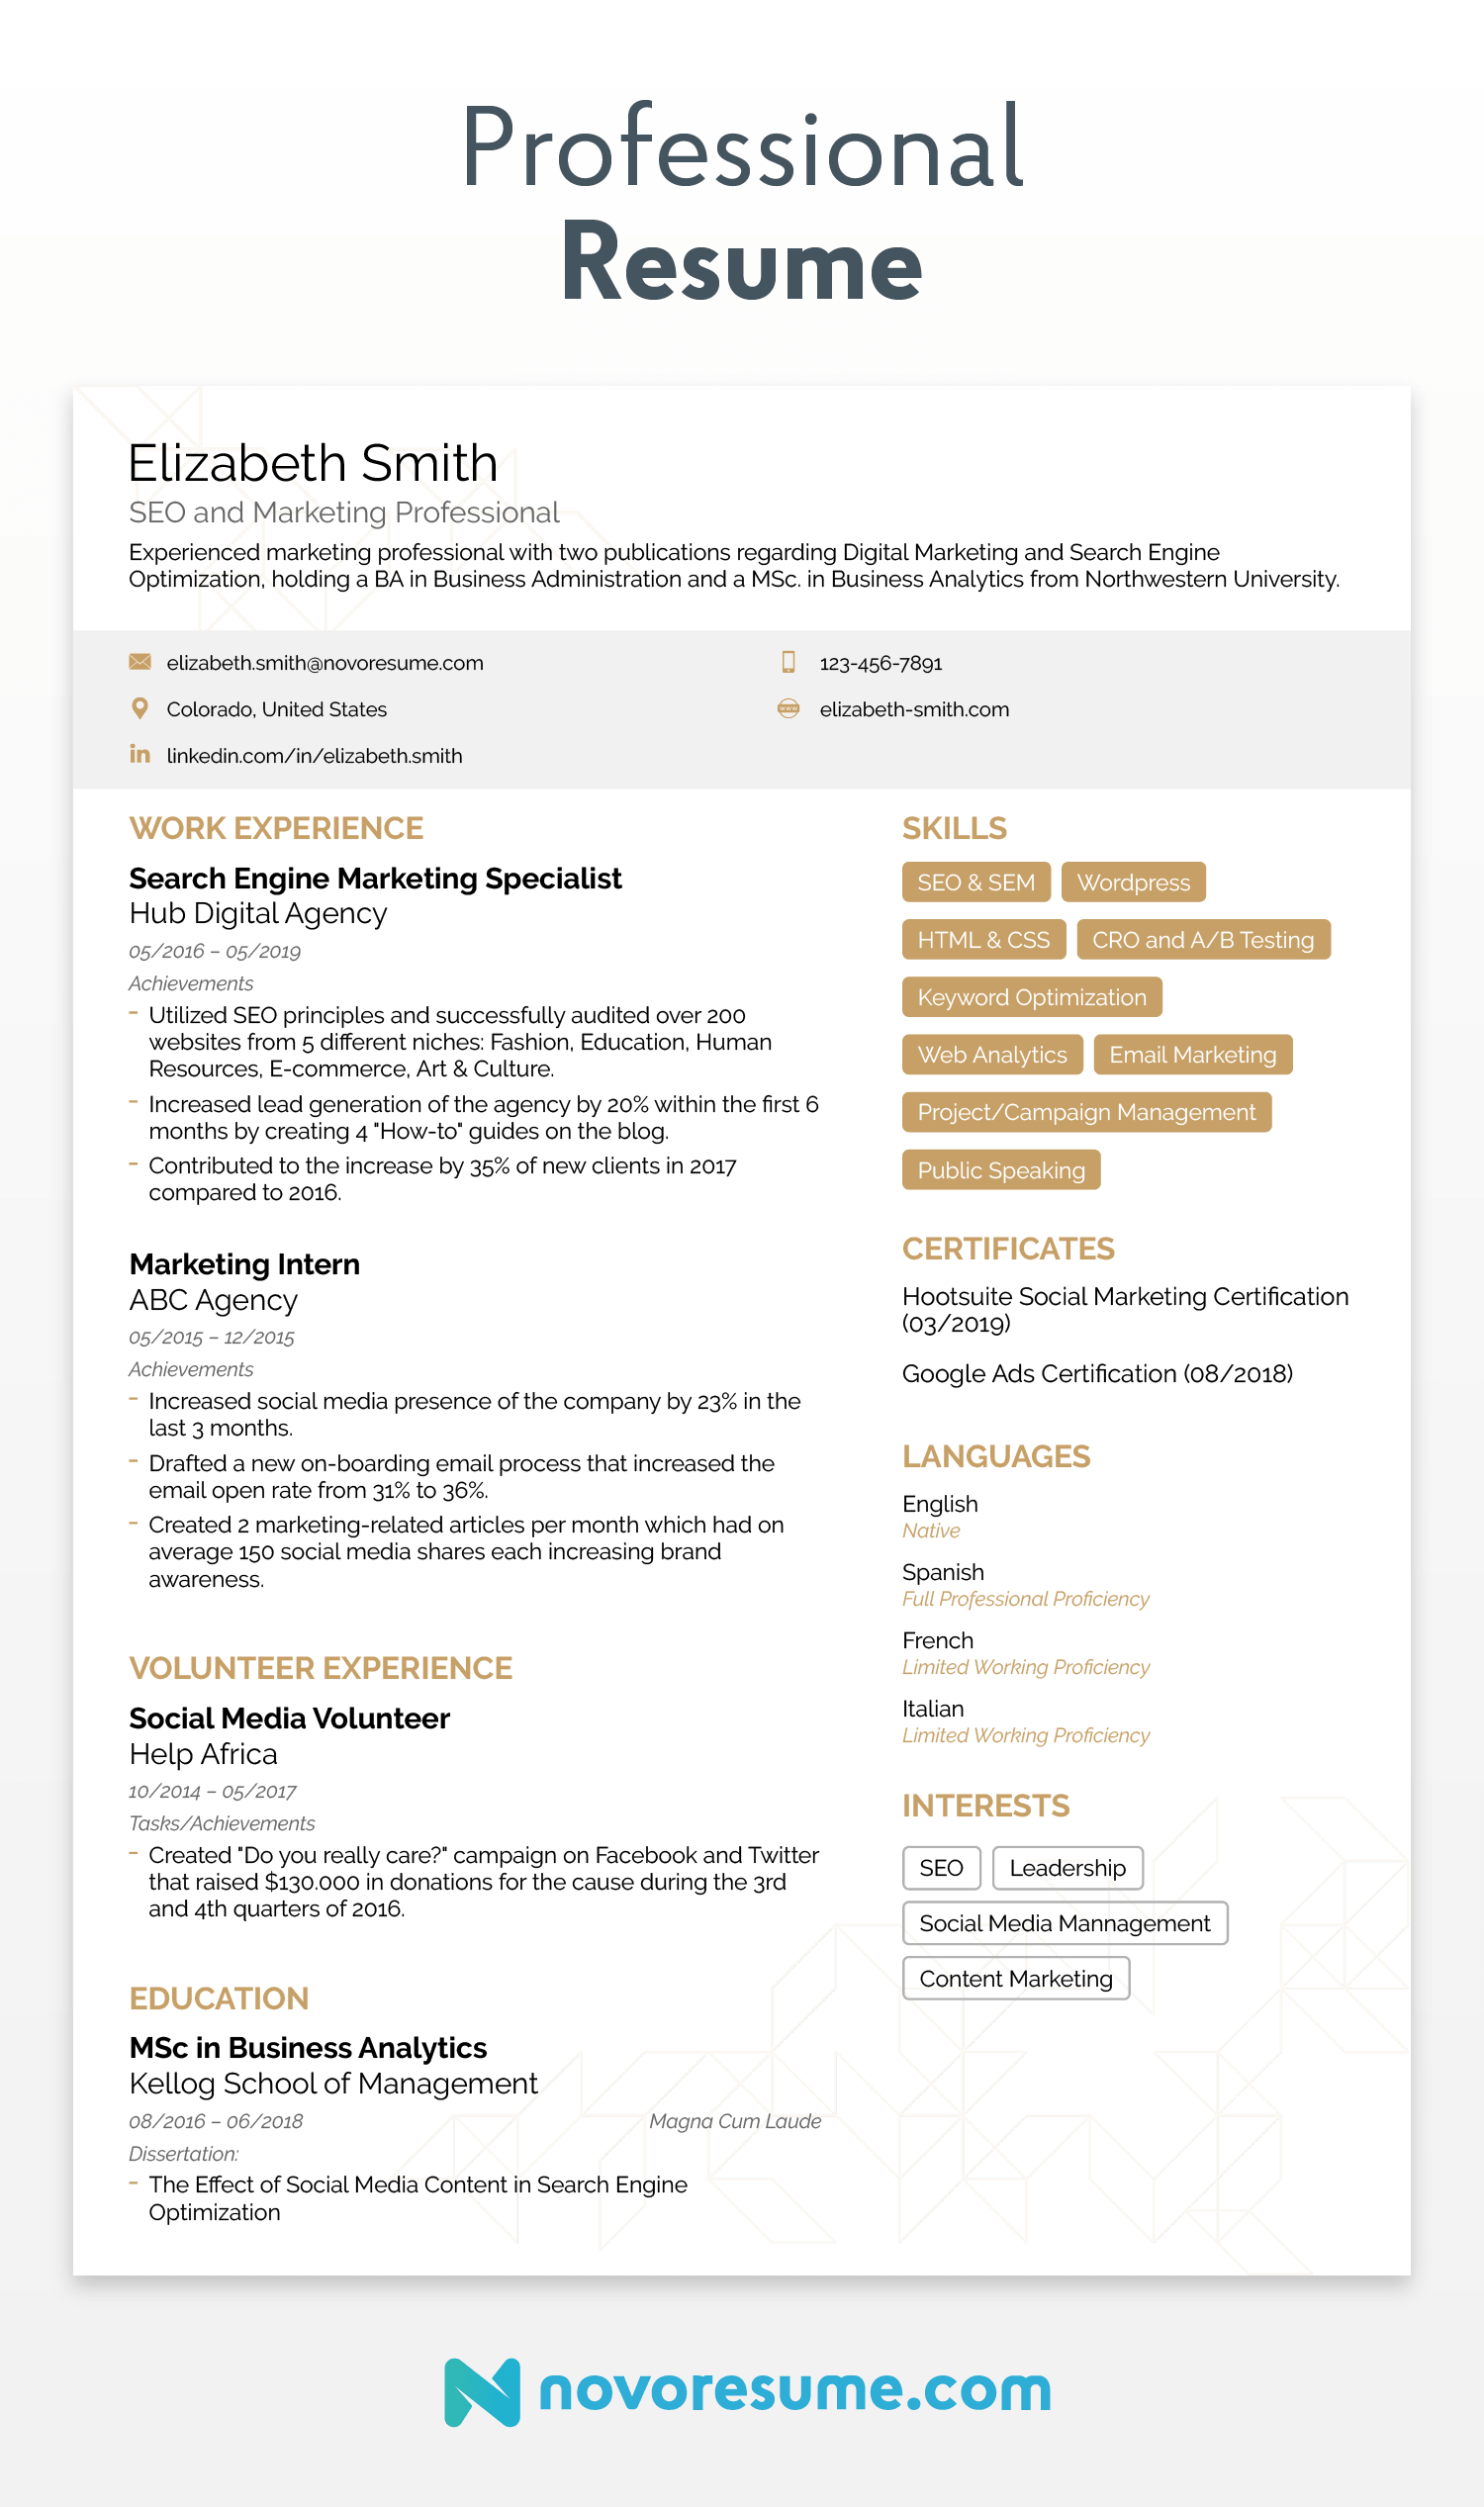 CV vs Resume  What are the Differences